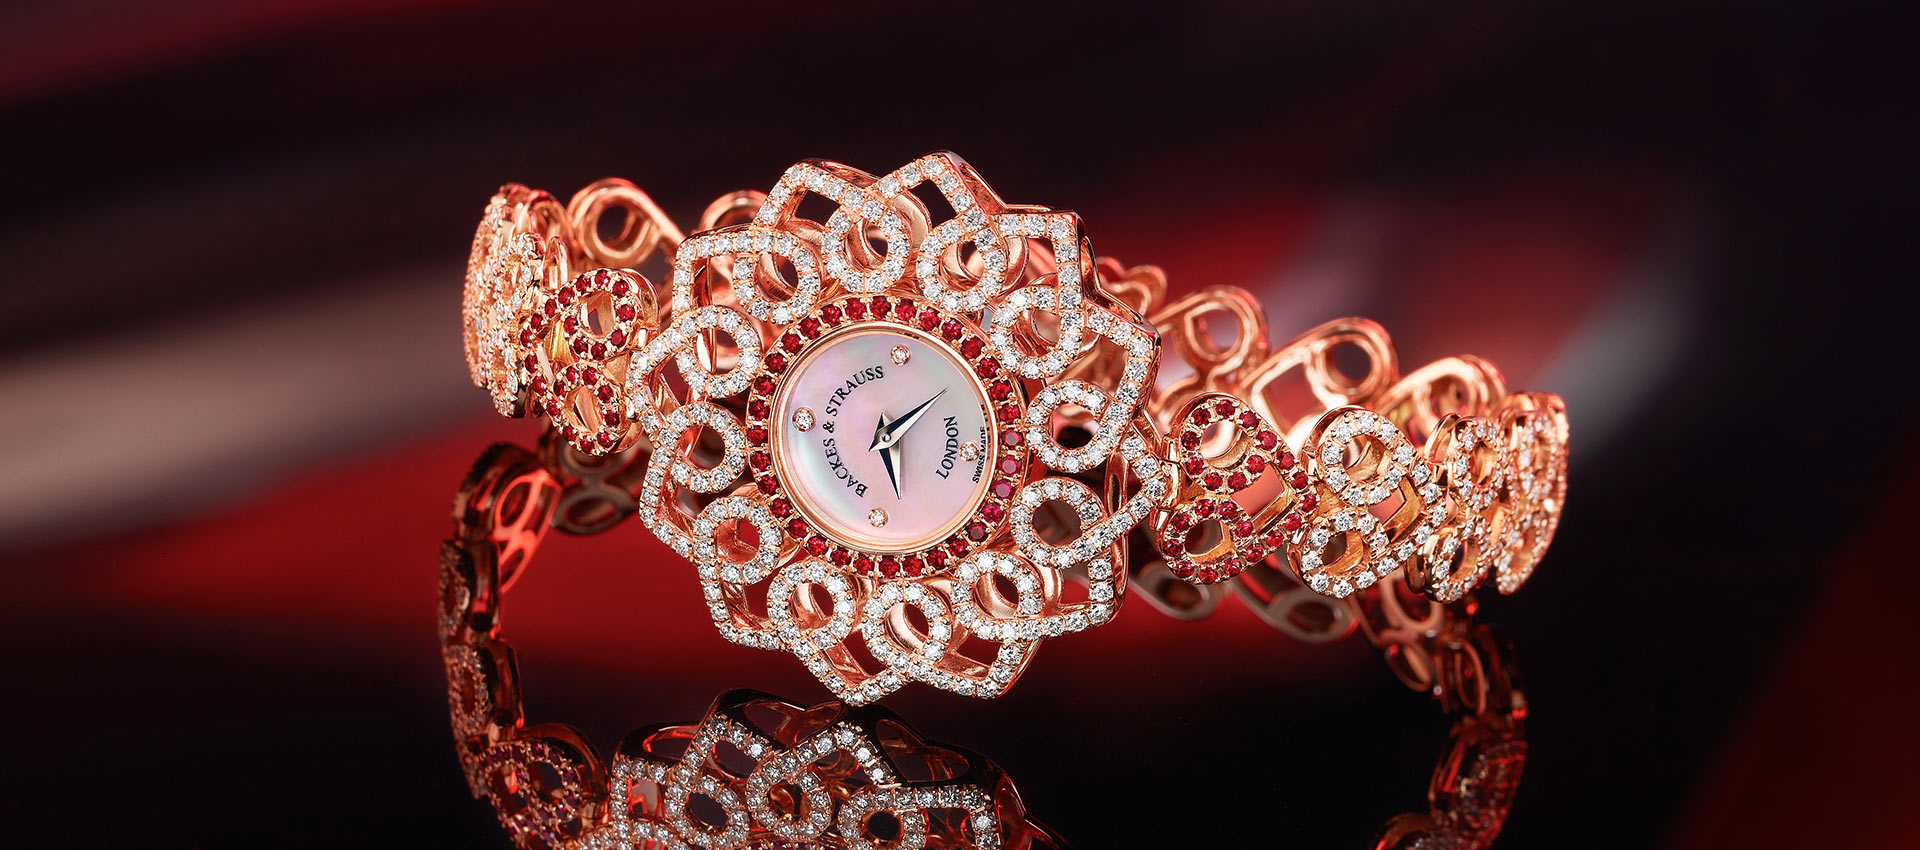 Victoria Princess diamond encrusted watch for ladies